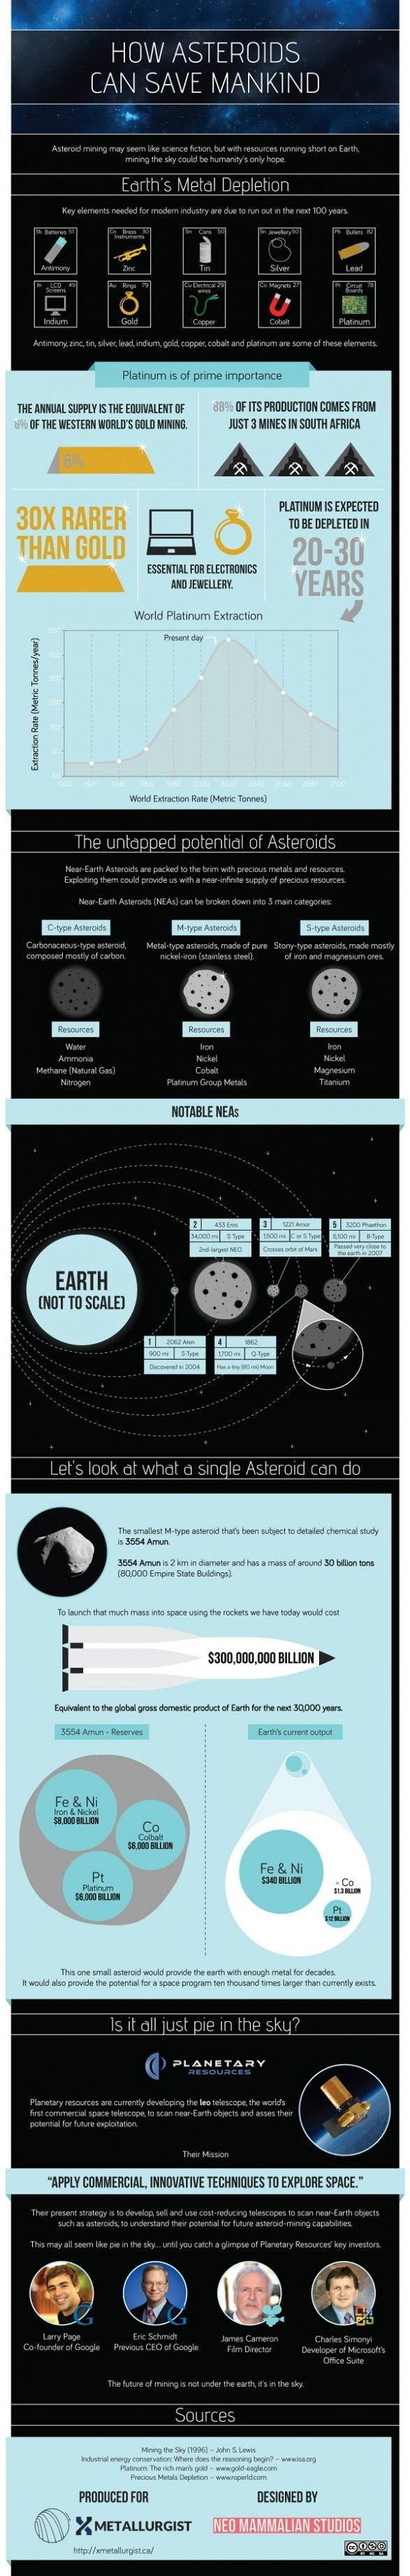 How asteroids can save mankind (or why asteroid mining will be necessary)